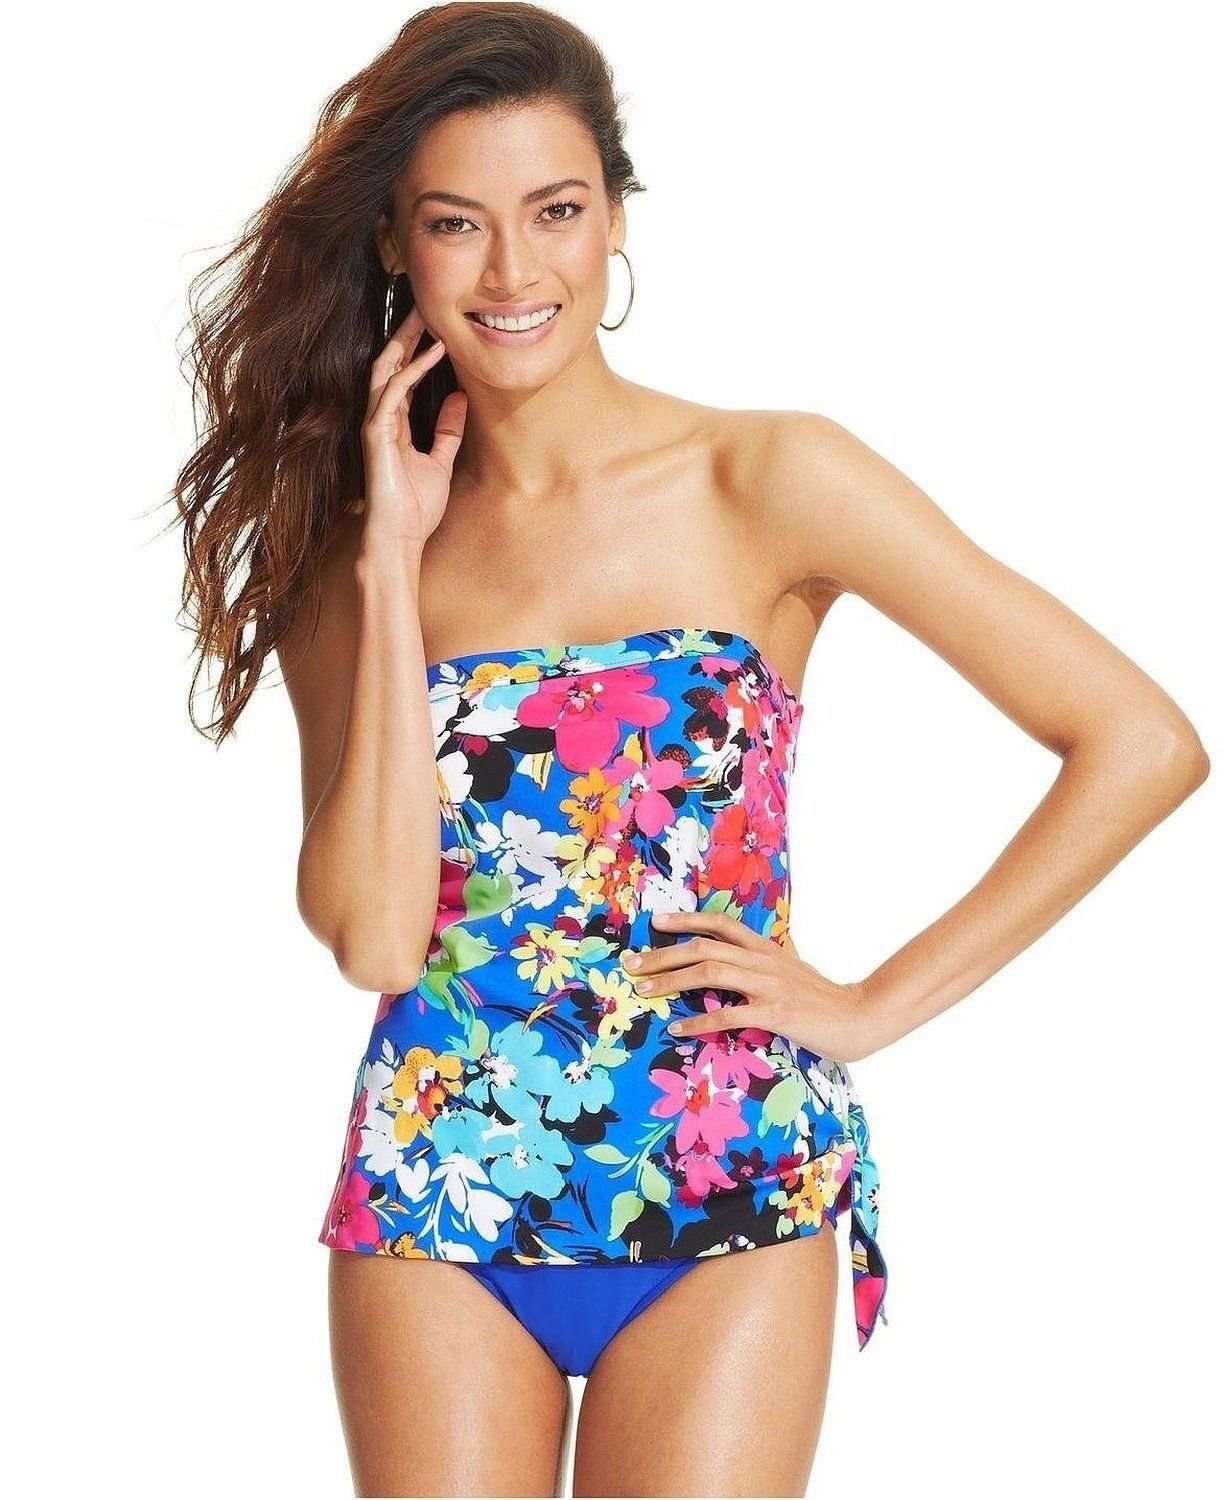 e76d7eede2aec Details about NWT Swim Solutions One Piece Swimsuit Floral Strapless Bathing  Suit Size 8 1